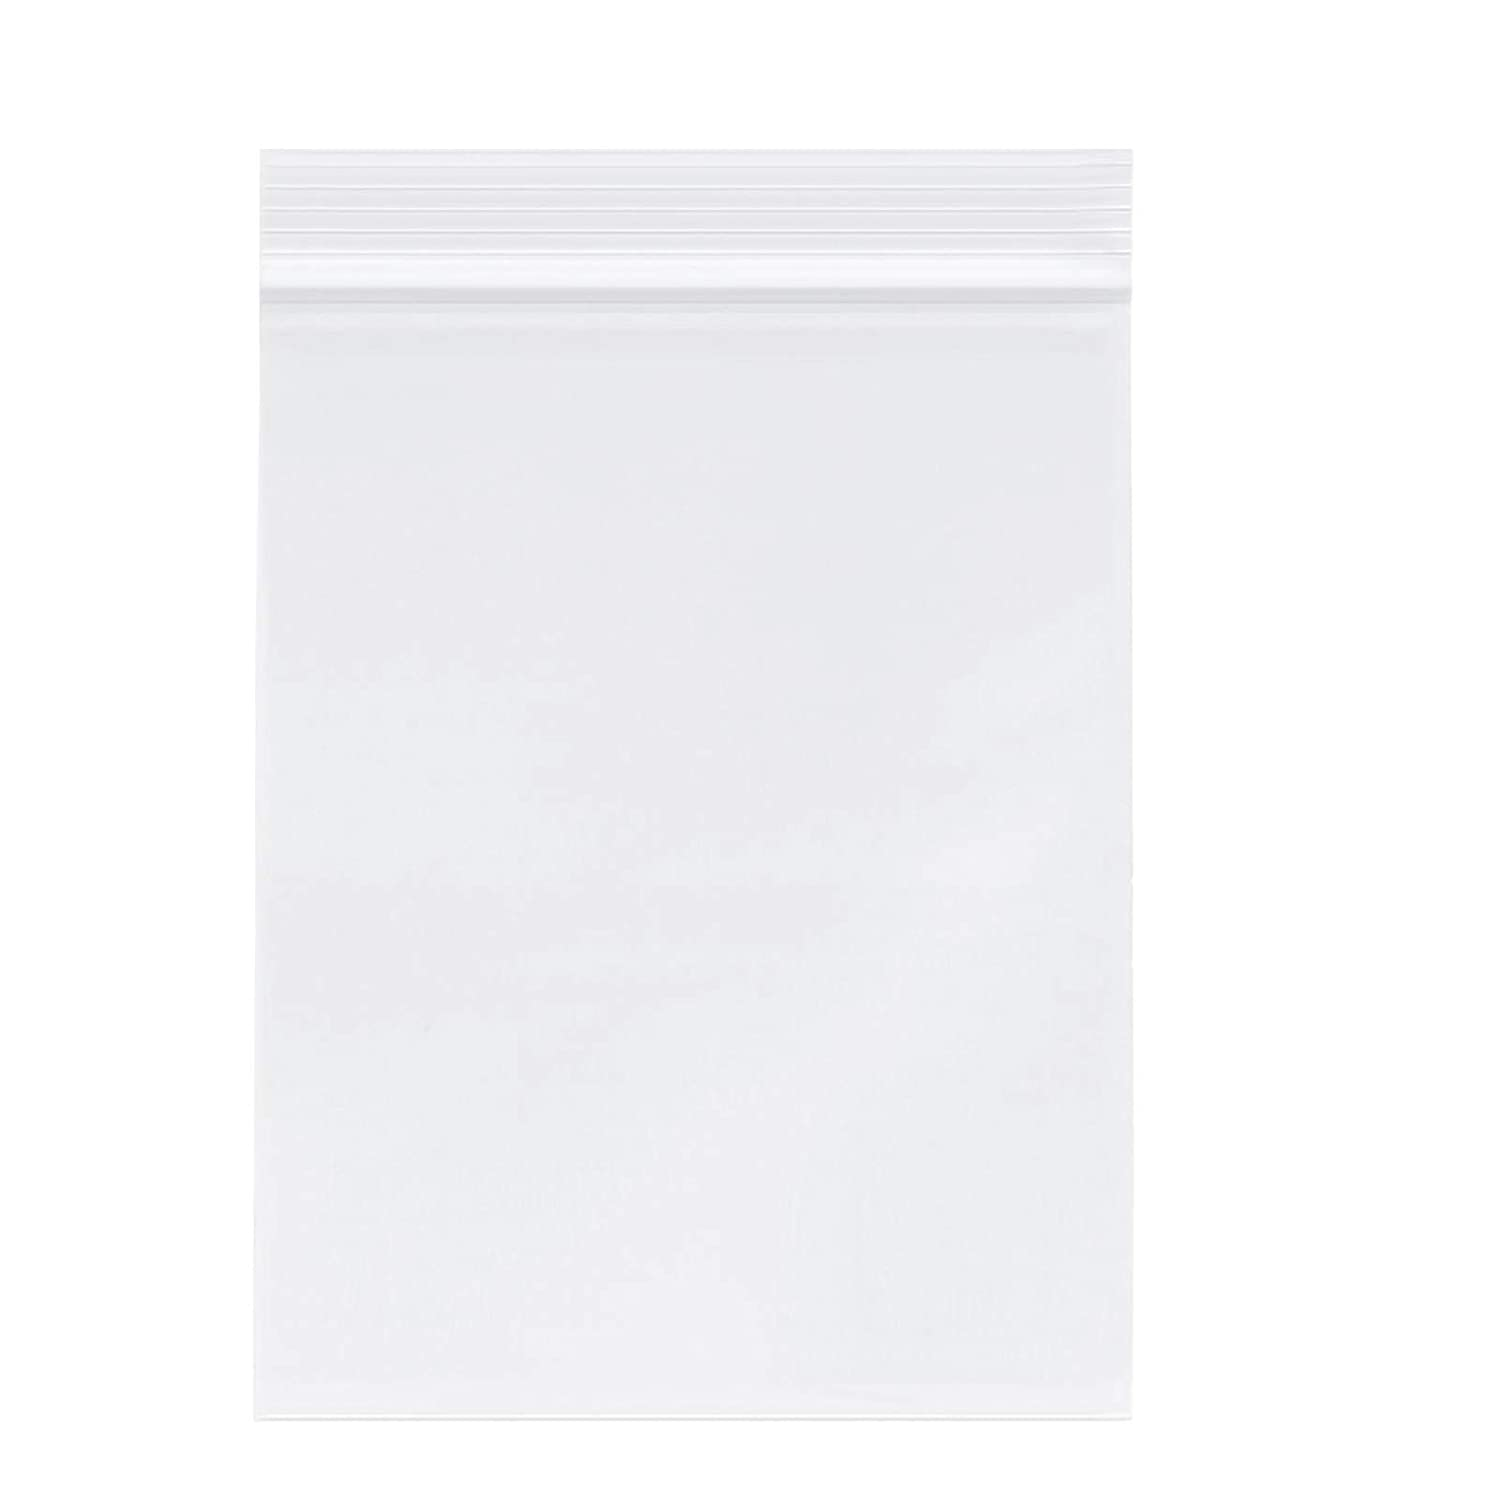 "4"" X 6"" (1000 PCS) Clear Reclosable Zip Poly Plastic Bags - 3.15 Mil Resealable Lock Seal Zipper Poly Bags for Prints, Office Supplies, Beads, Arts & Crafts"